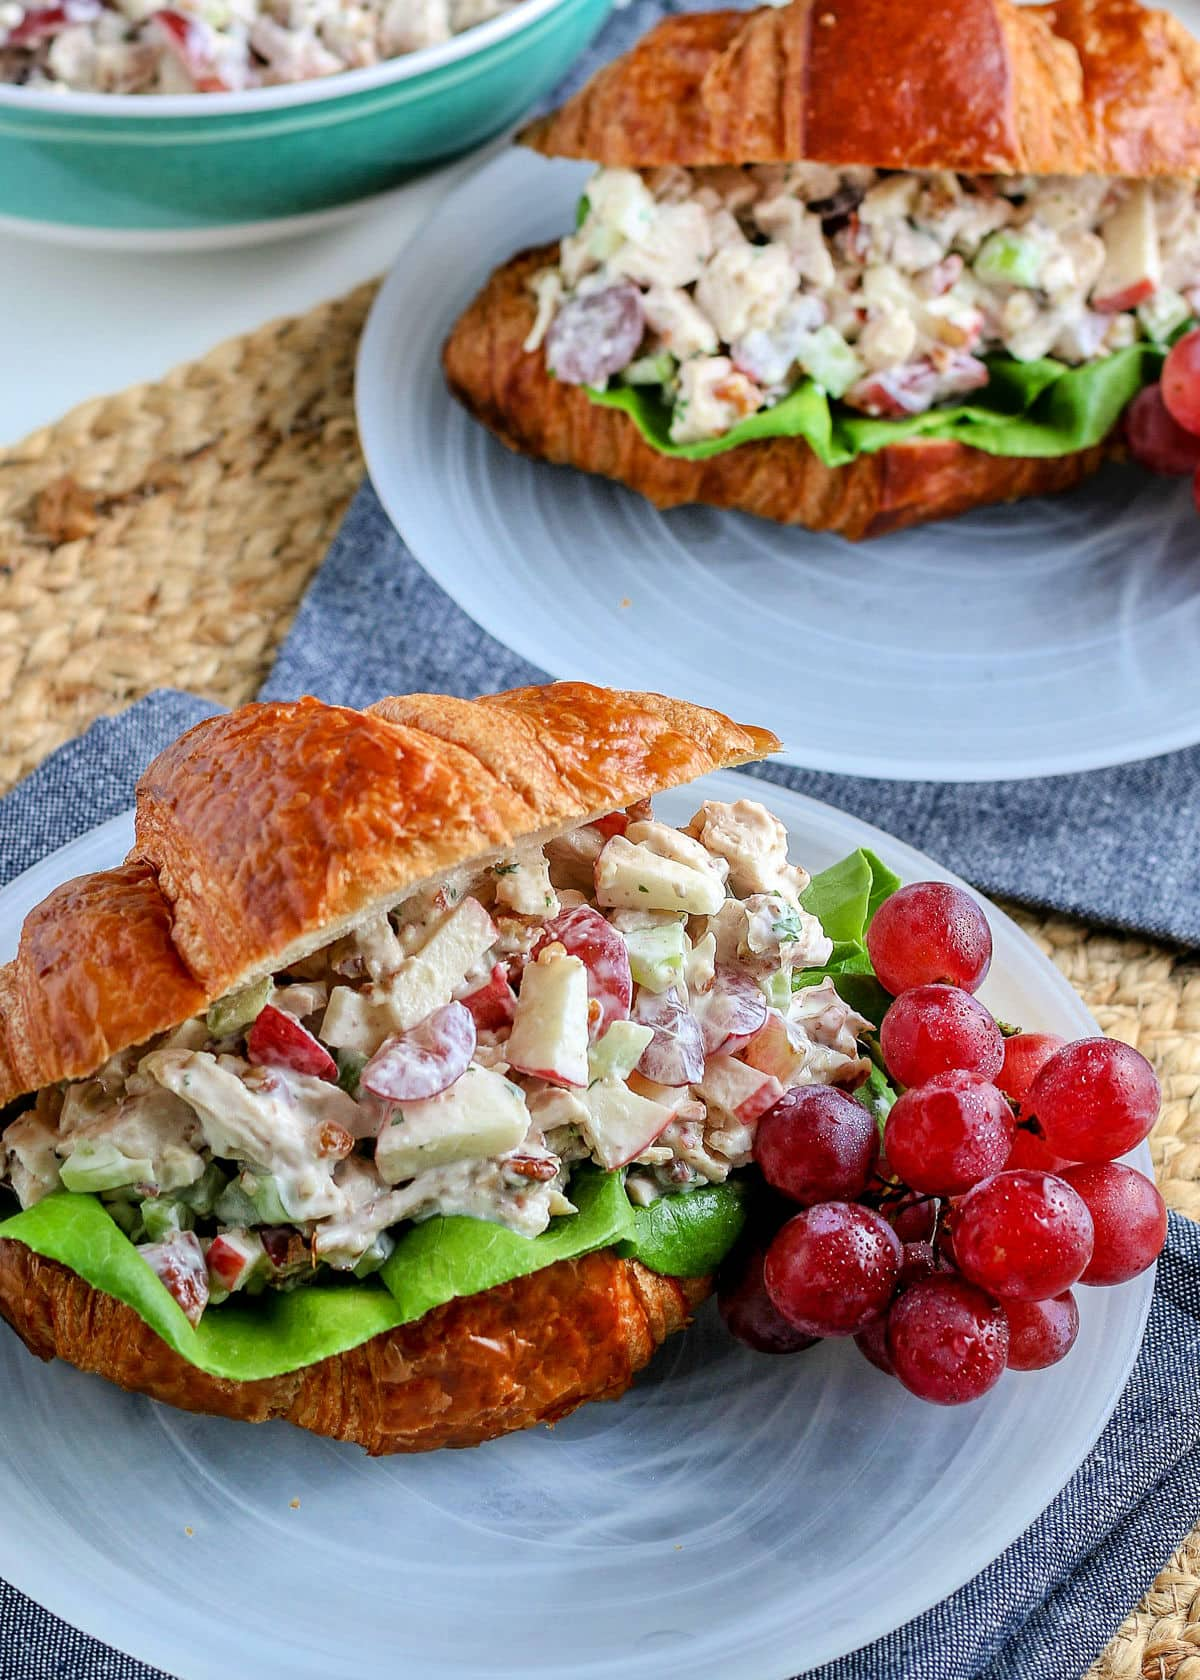 2 chicken salad sandwiches on white plates with blue napkins